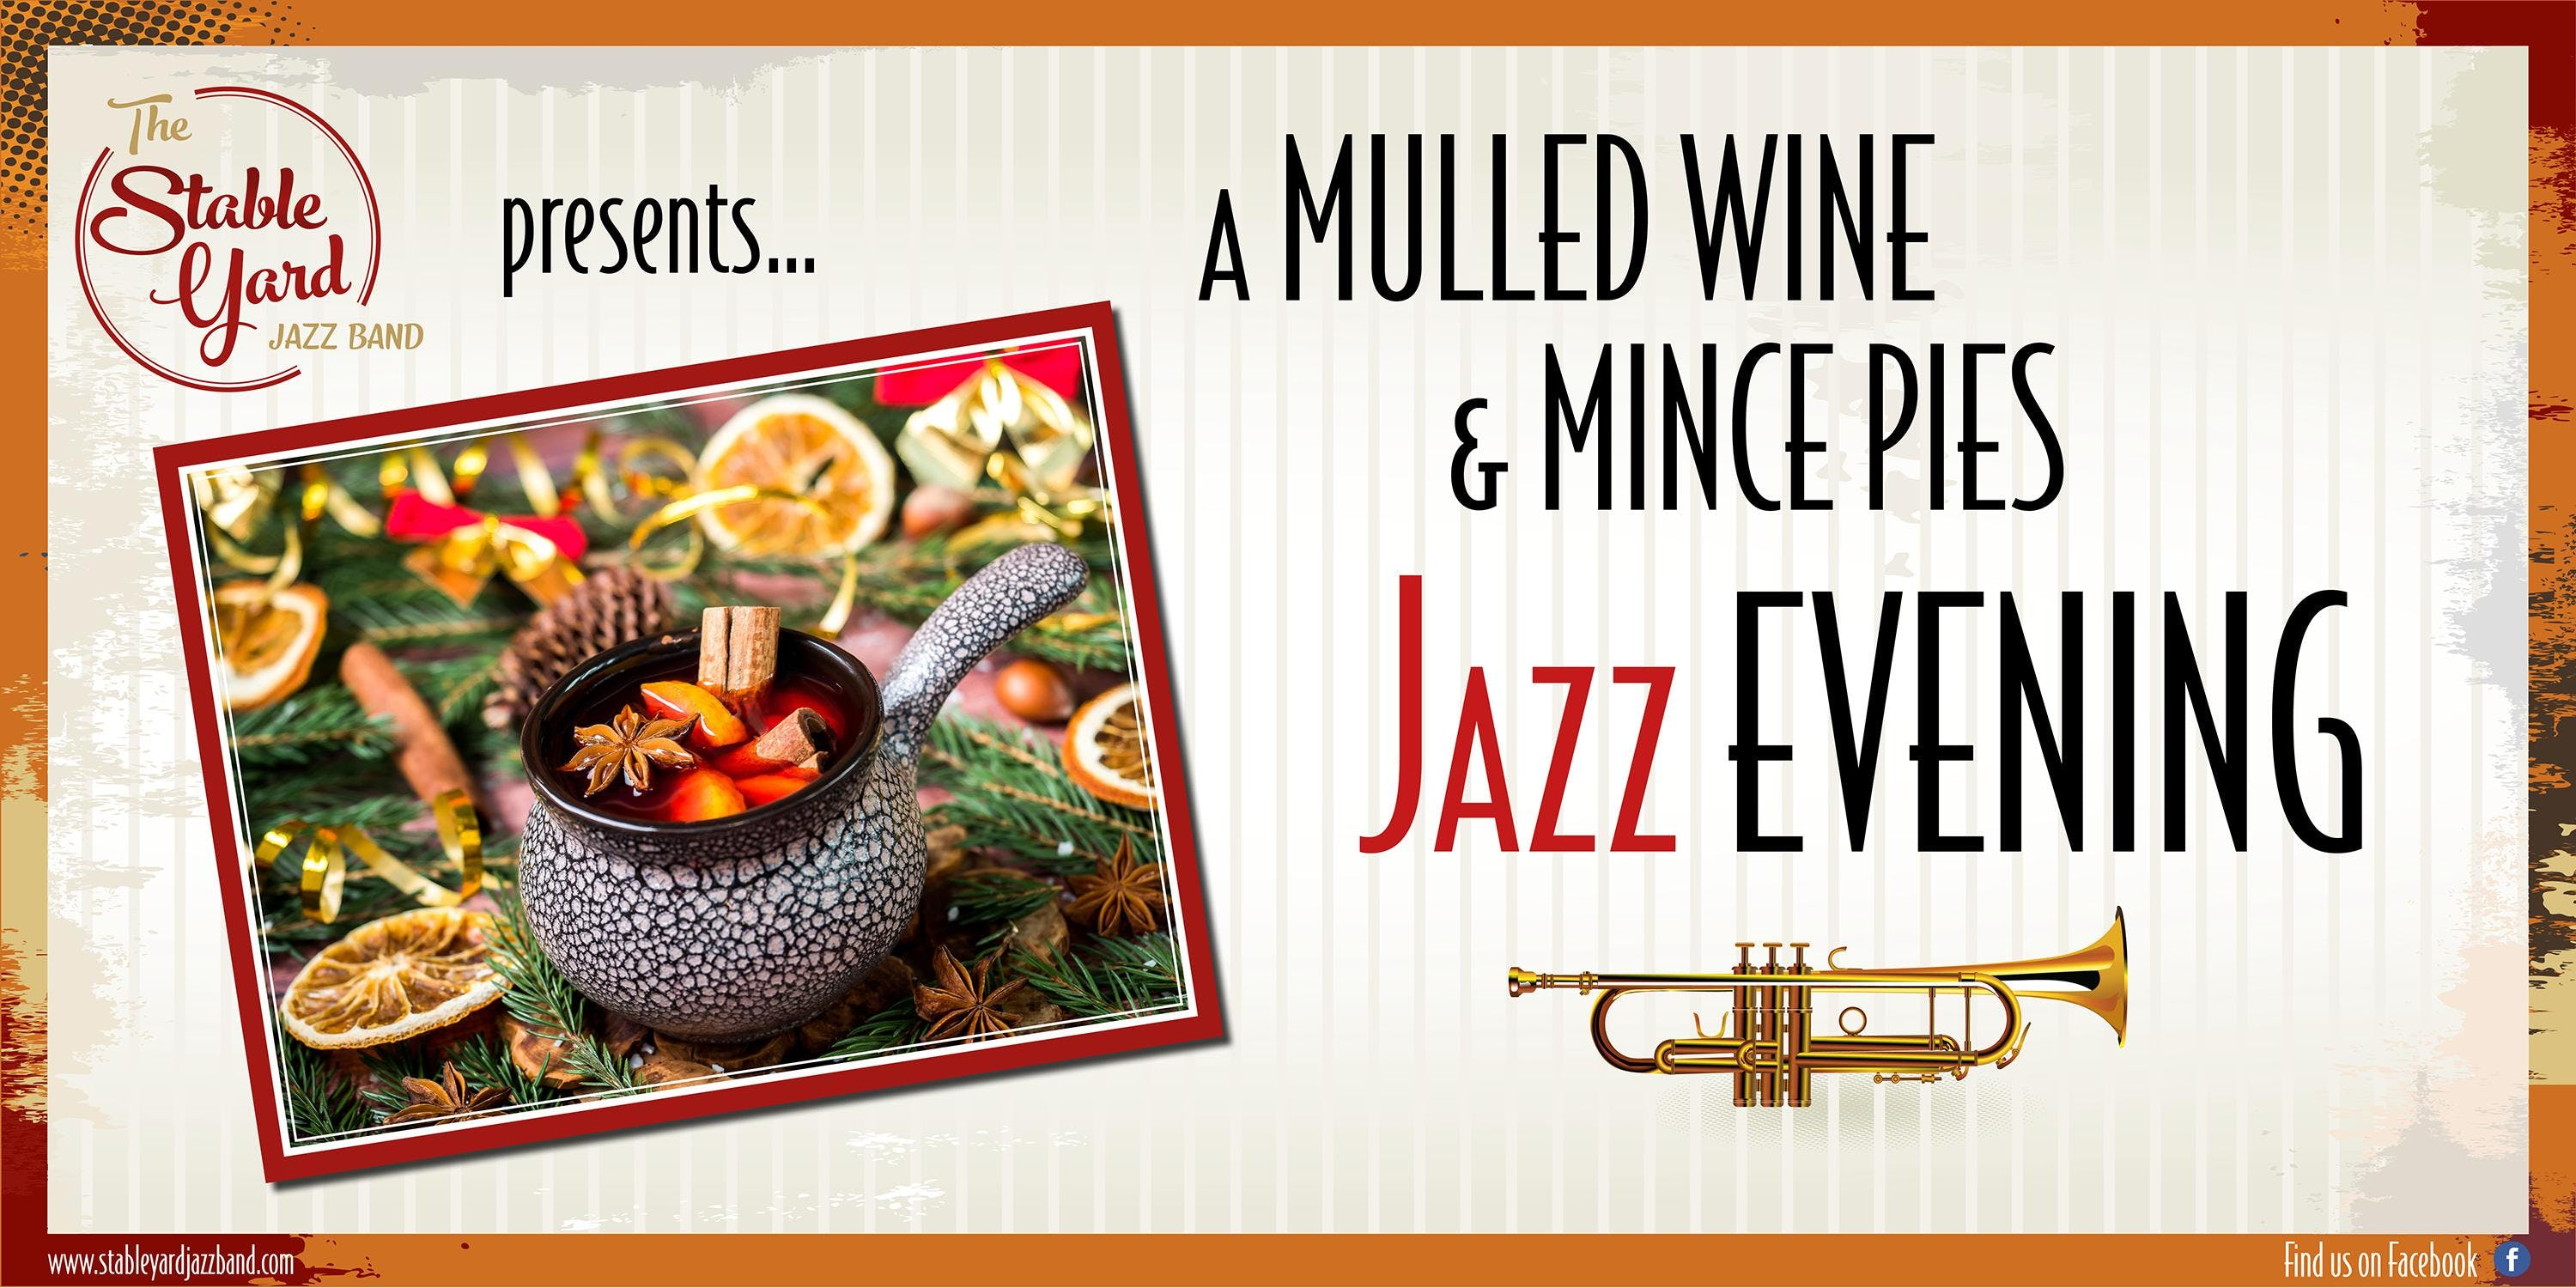 Mulled Wine & Mince Pies Jazz Evening